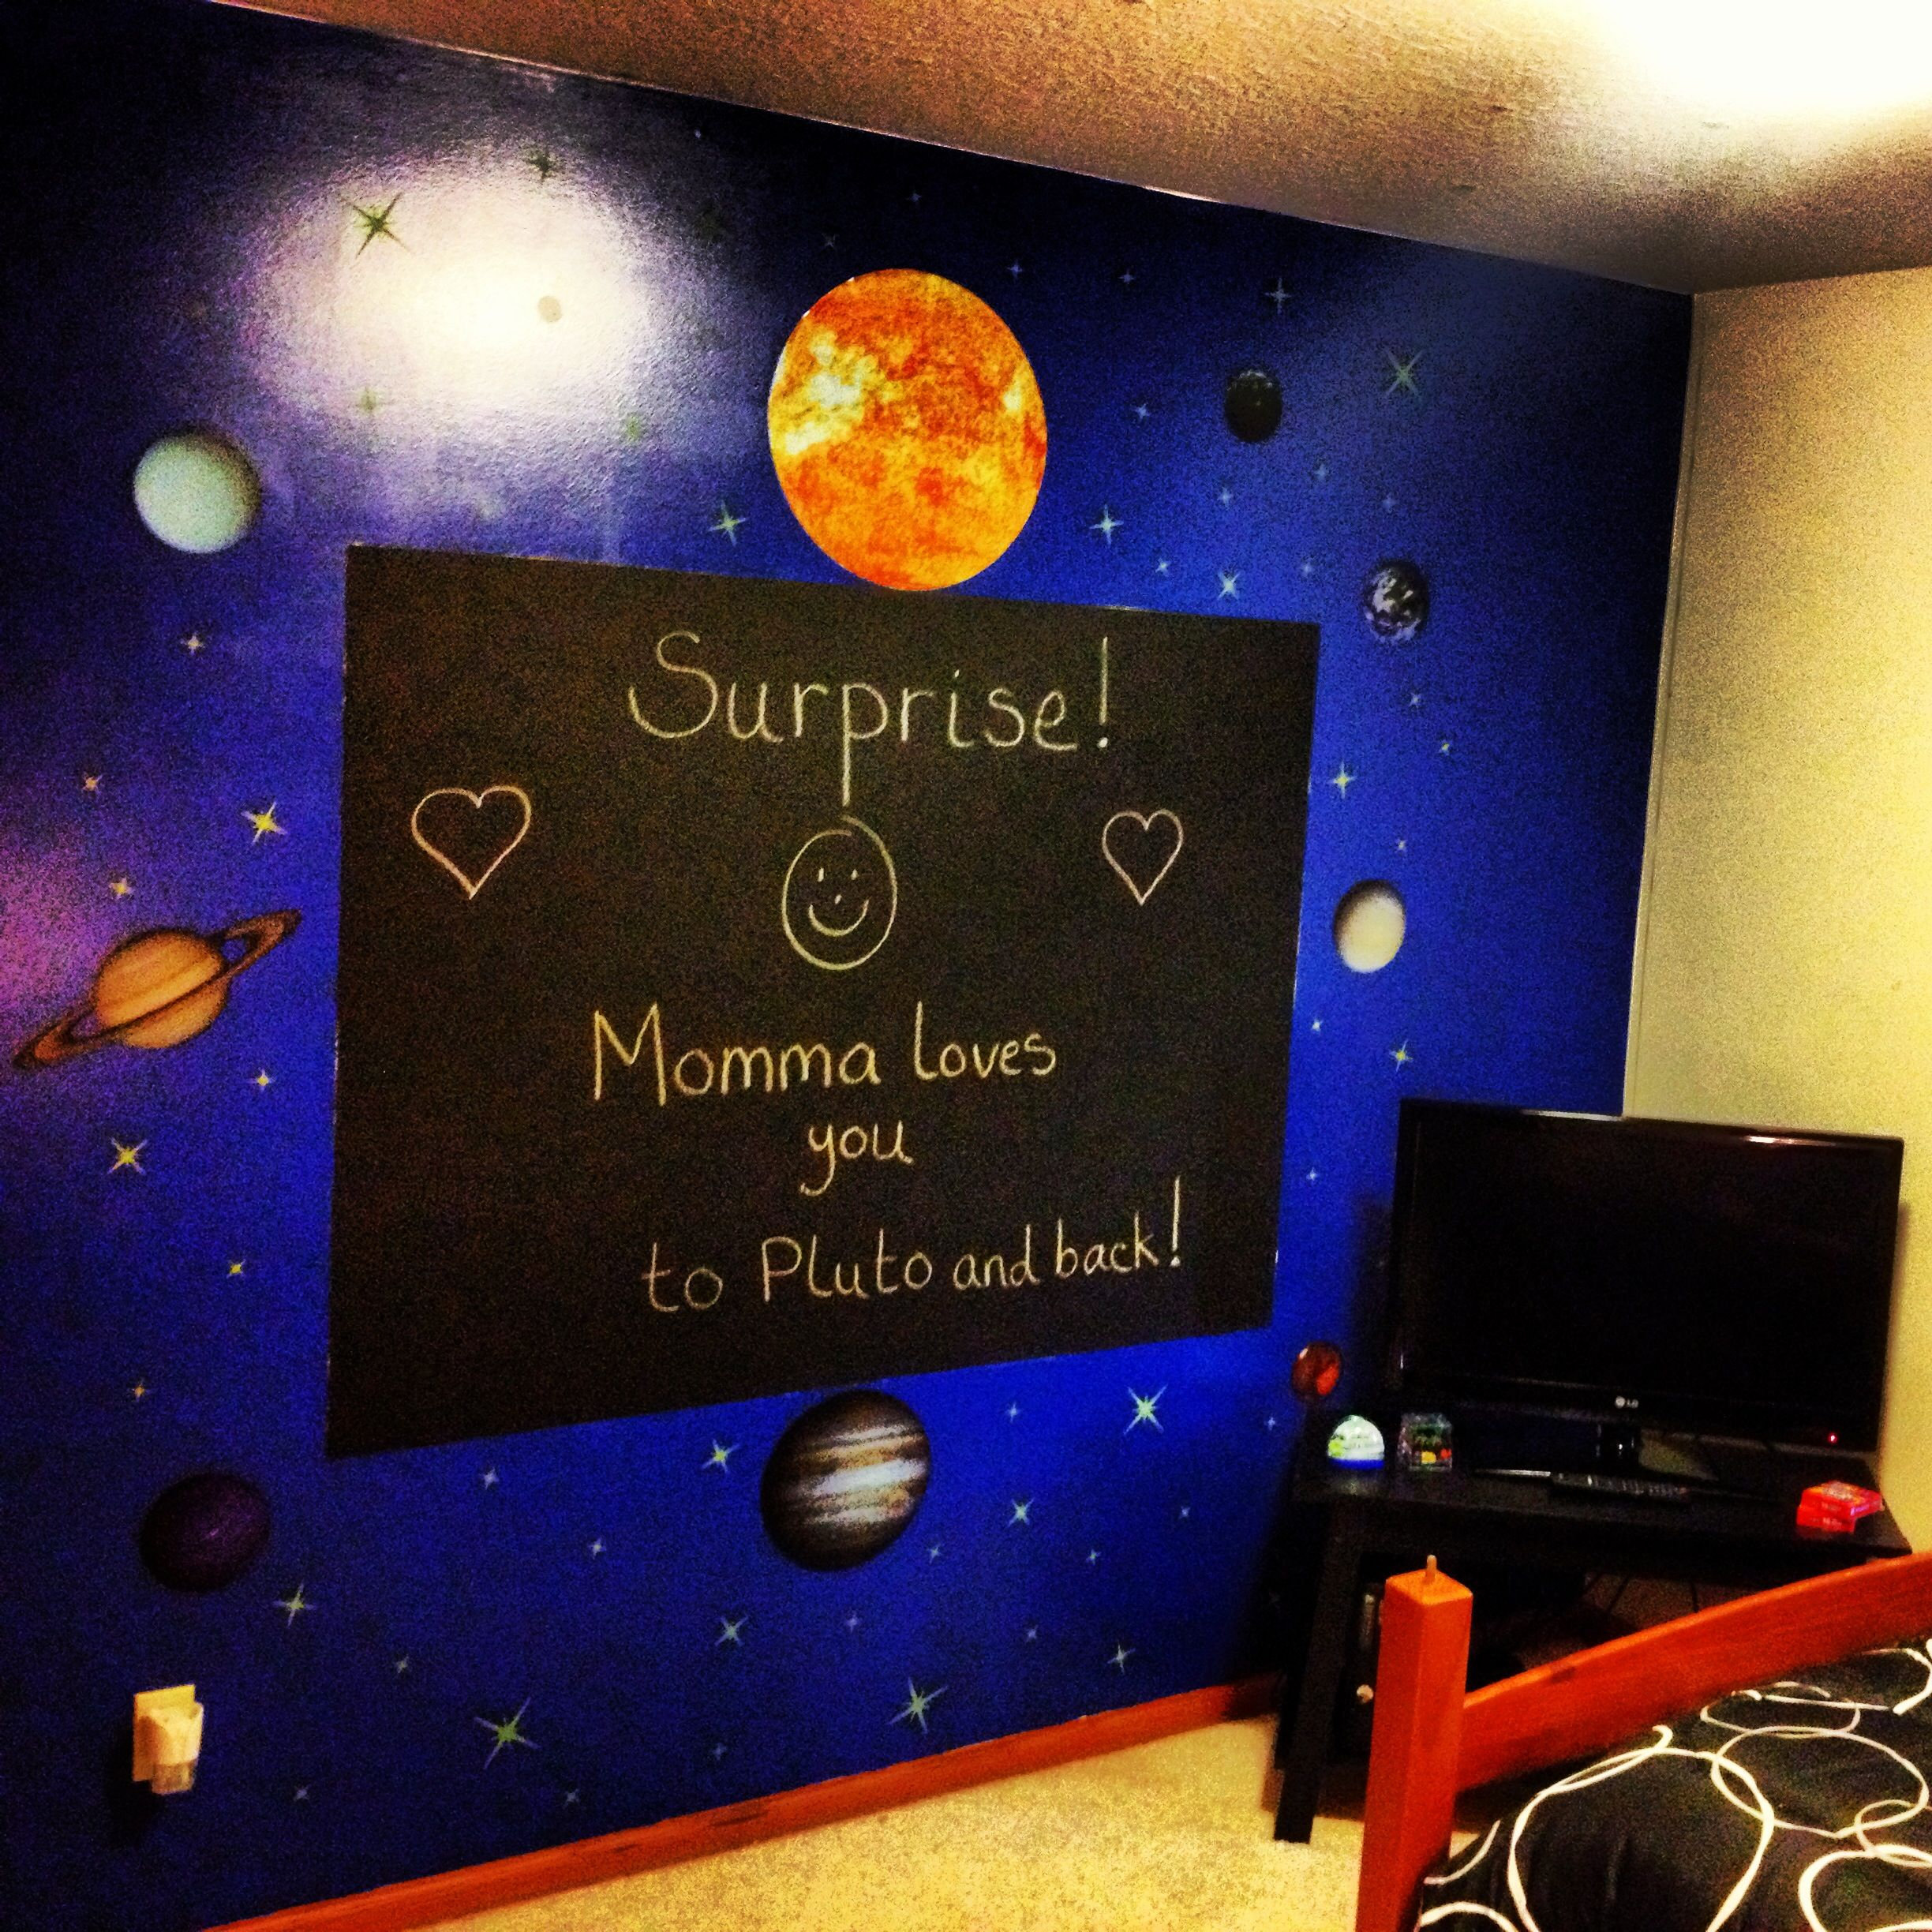 Solar System bedroom theme using black chalkboard paint and wall clings   The stars glow in. Solar System bedroom theme using black chalkboard paint and wall